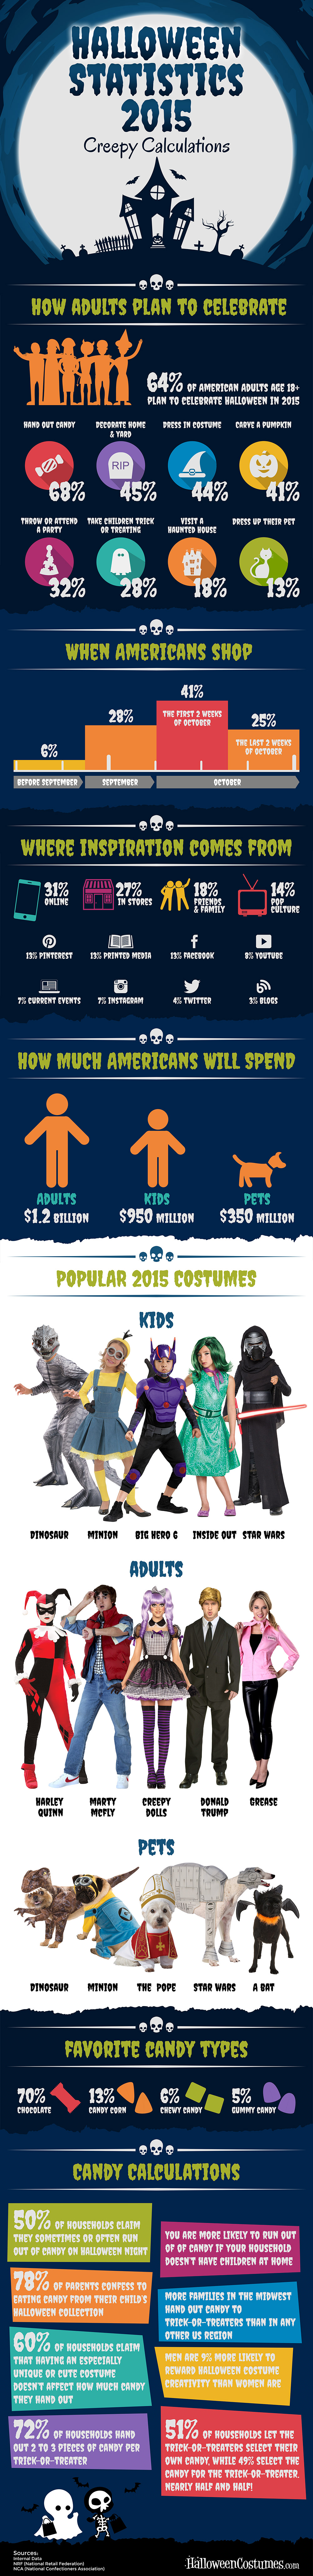 Creepy Calculations 2015 Infographic